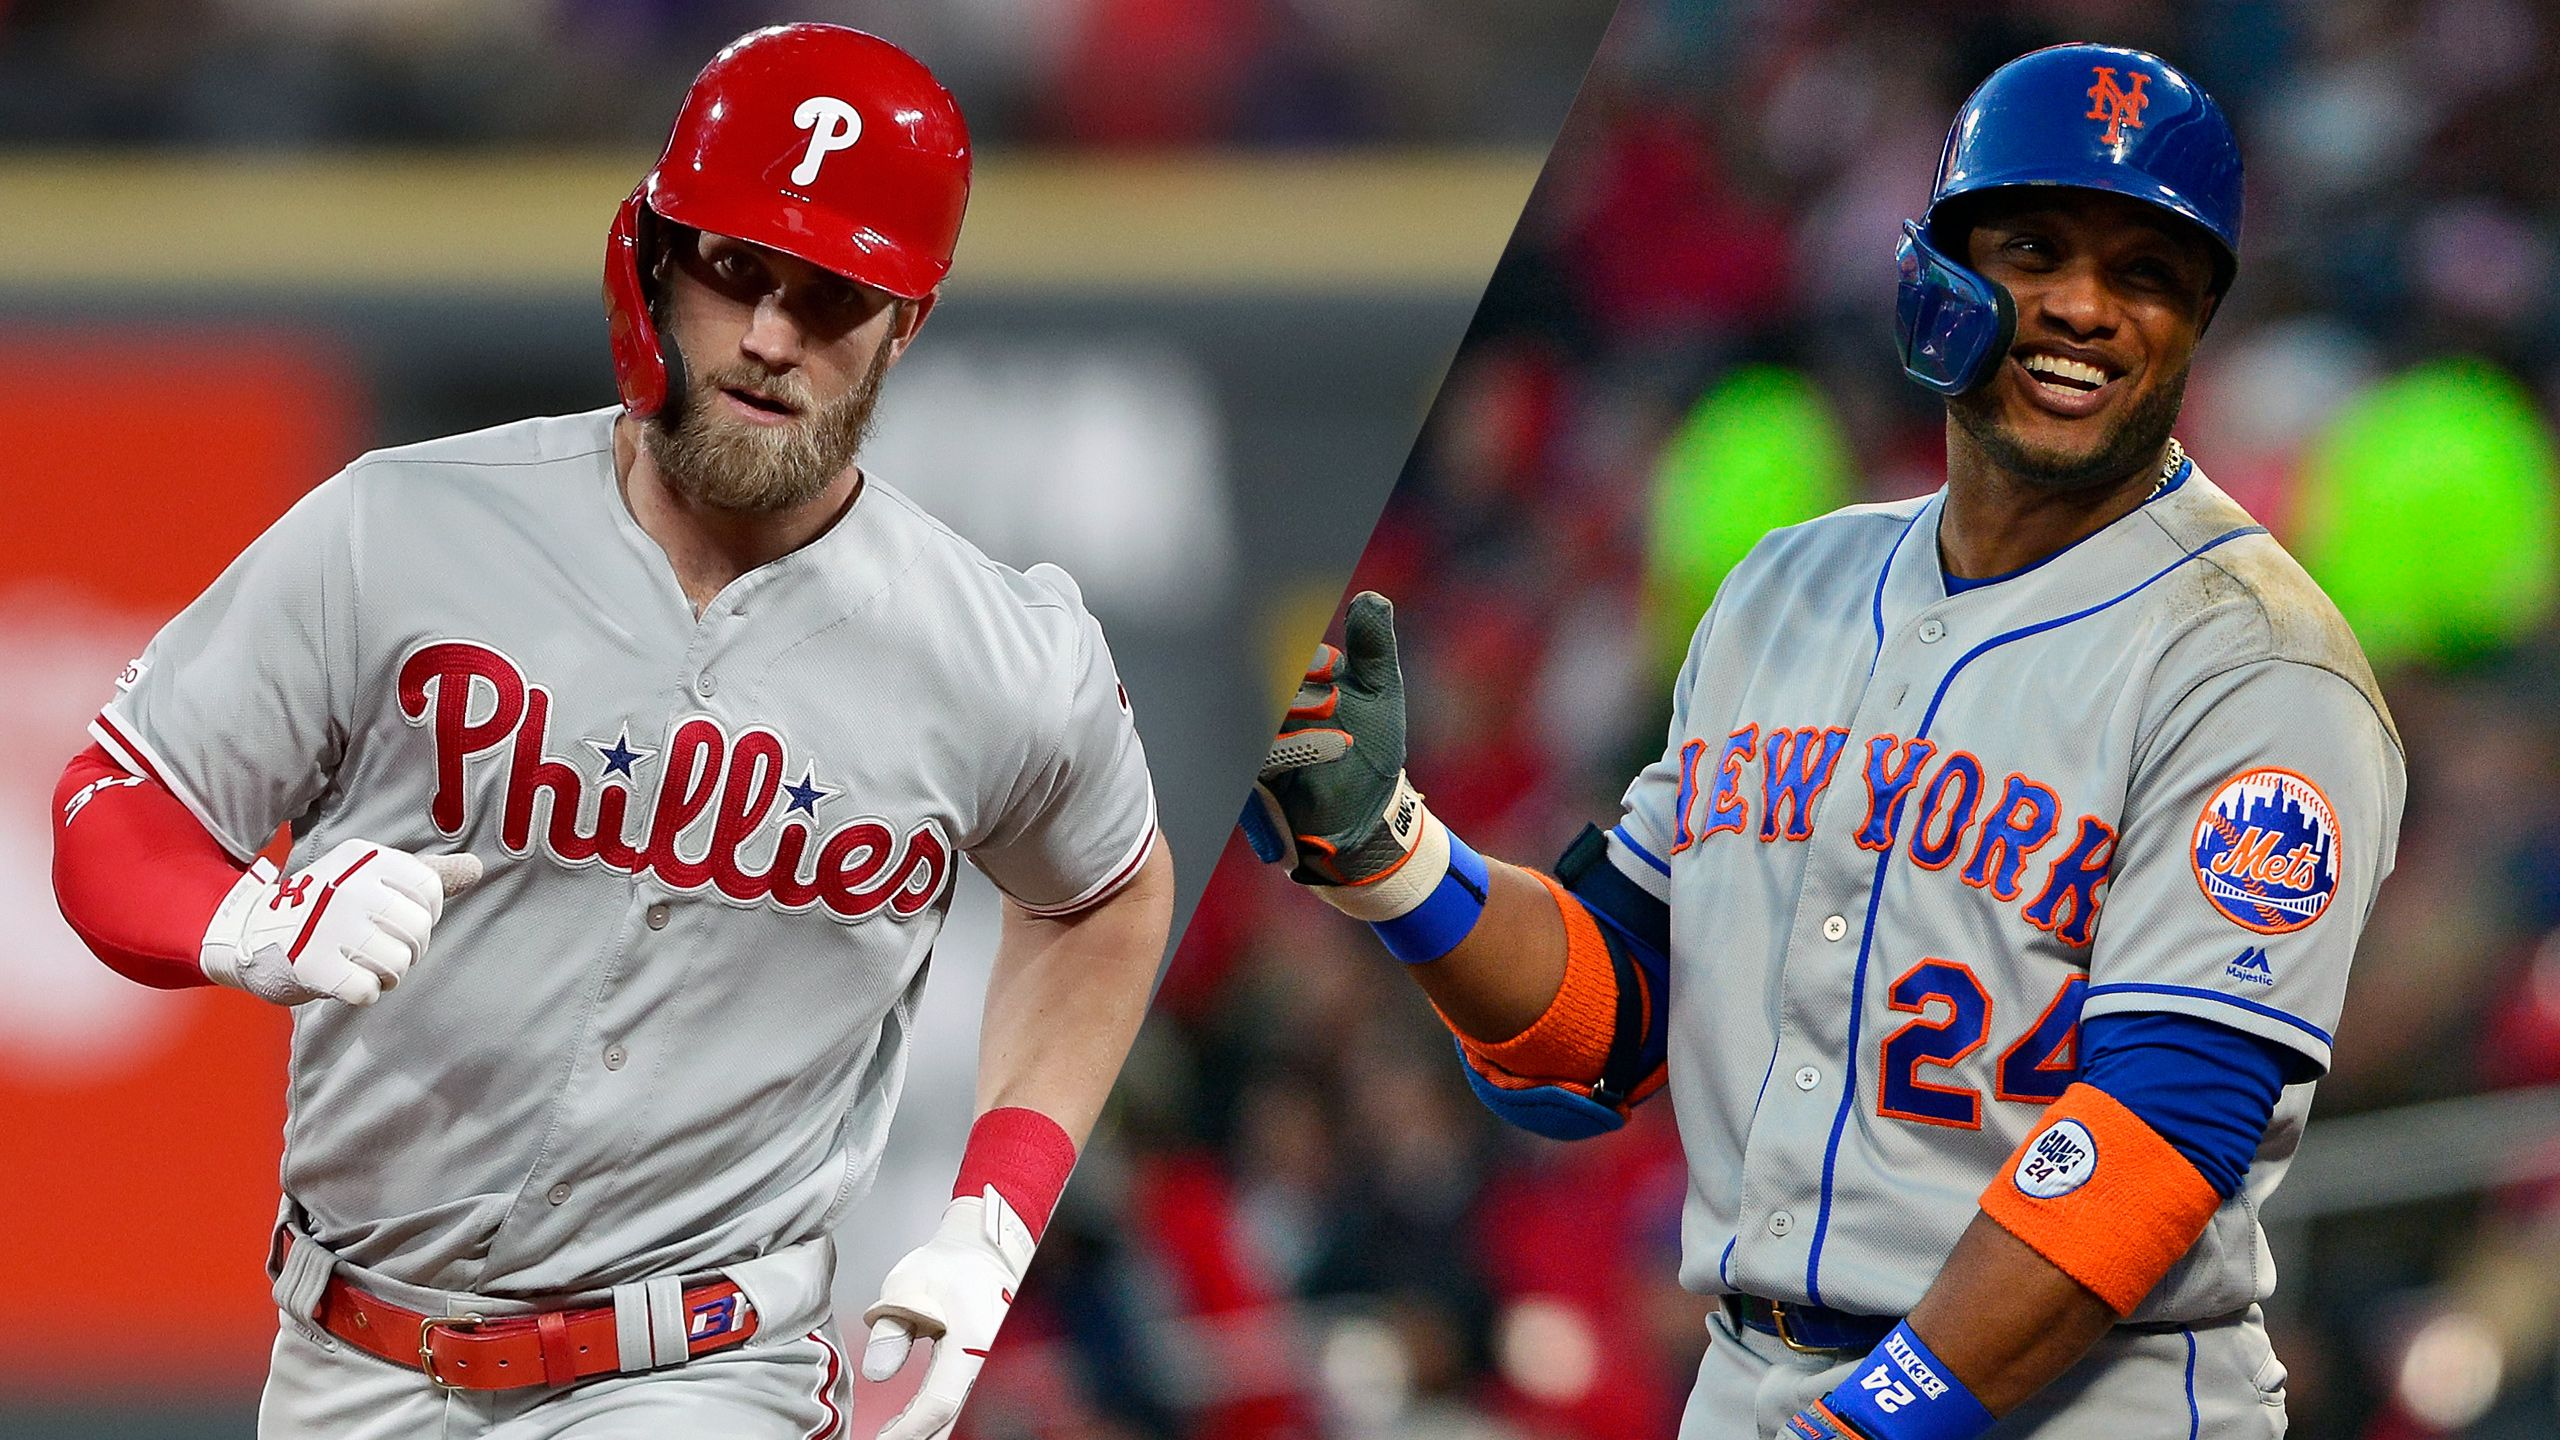 Philadelphia Phillies vs. New York Mets (re-air)